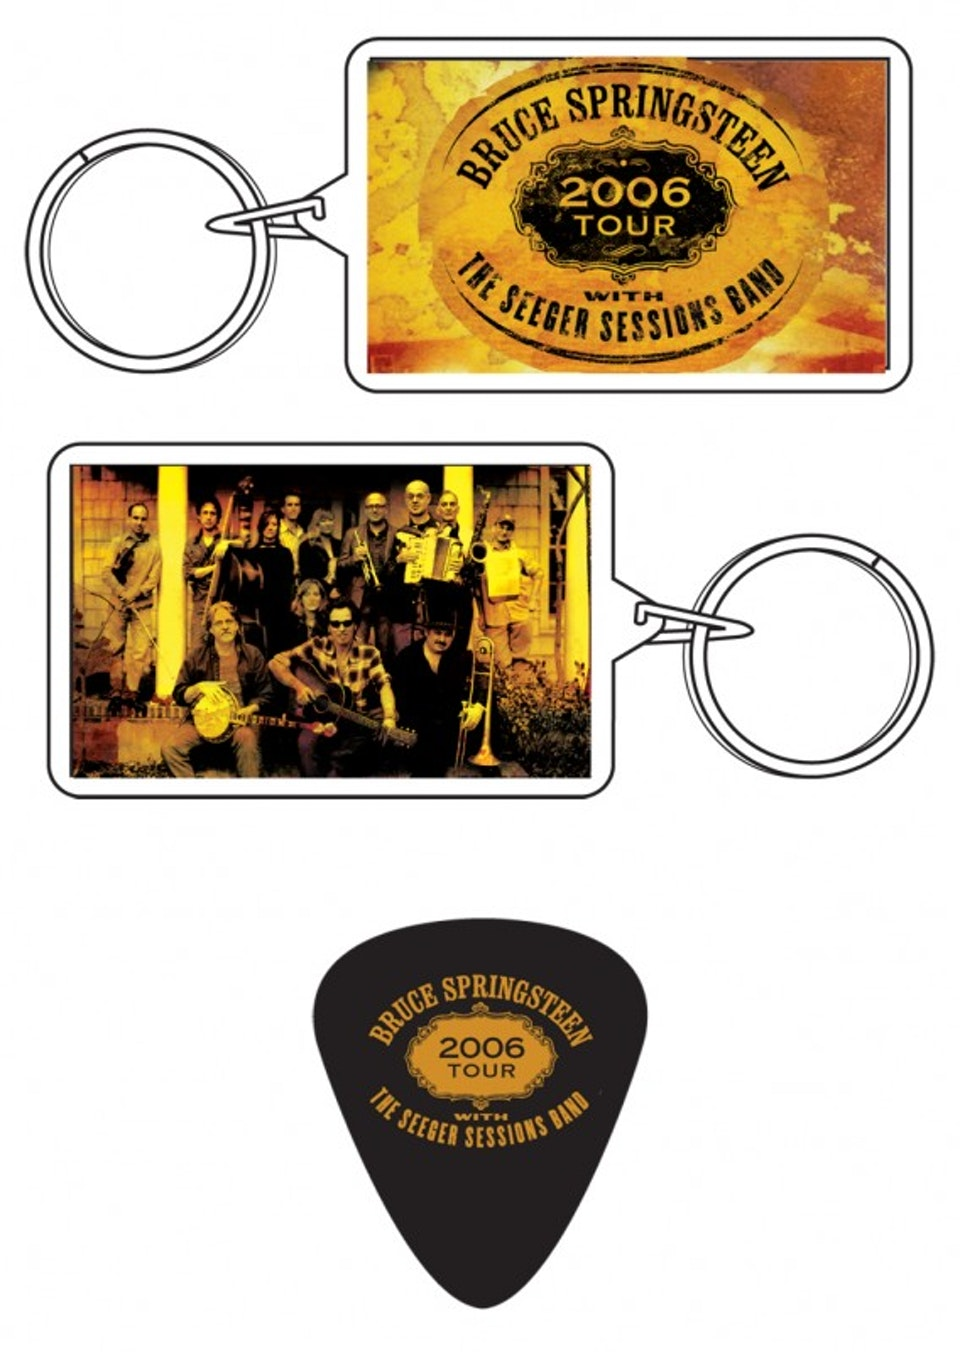 Seeger Sessions Tour Merch - Keychain and guitar pick